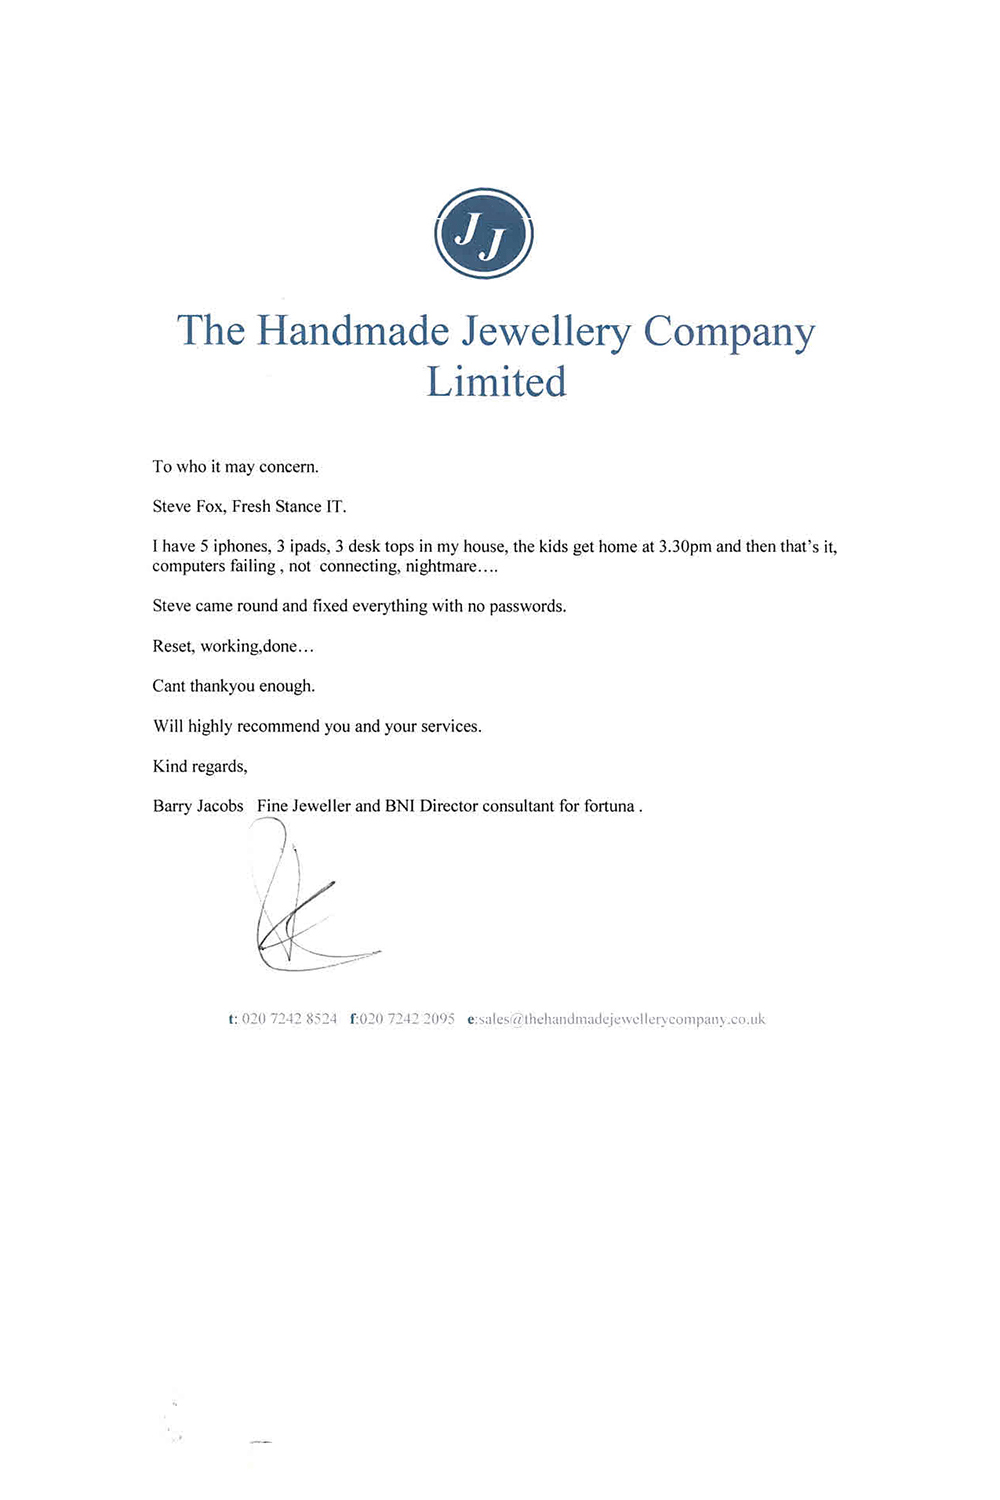 Cloud Solutions Handmade Jewellery Co Testimonial Fresh Stance IT